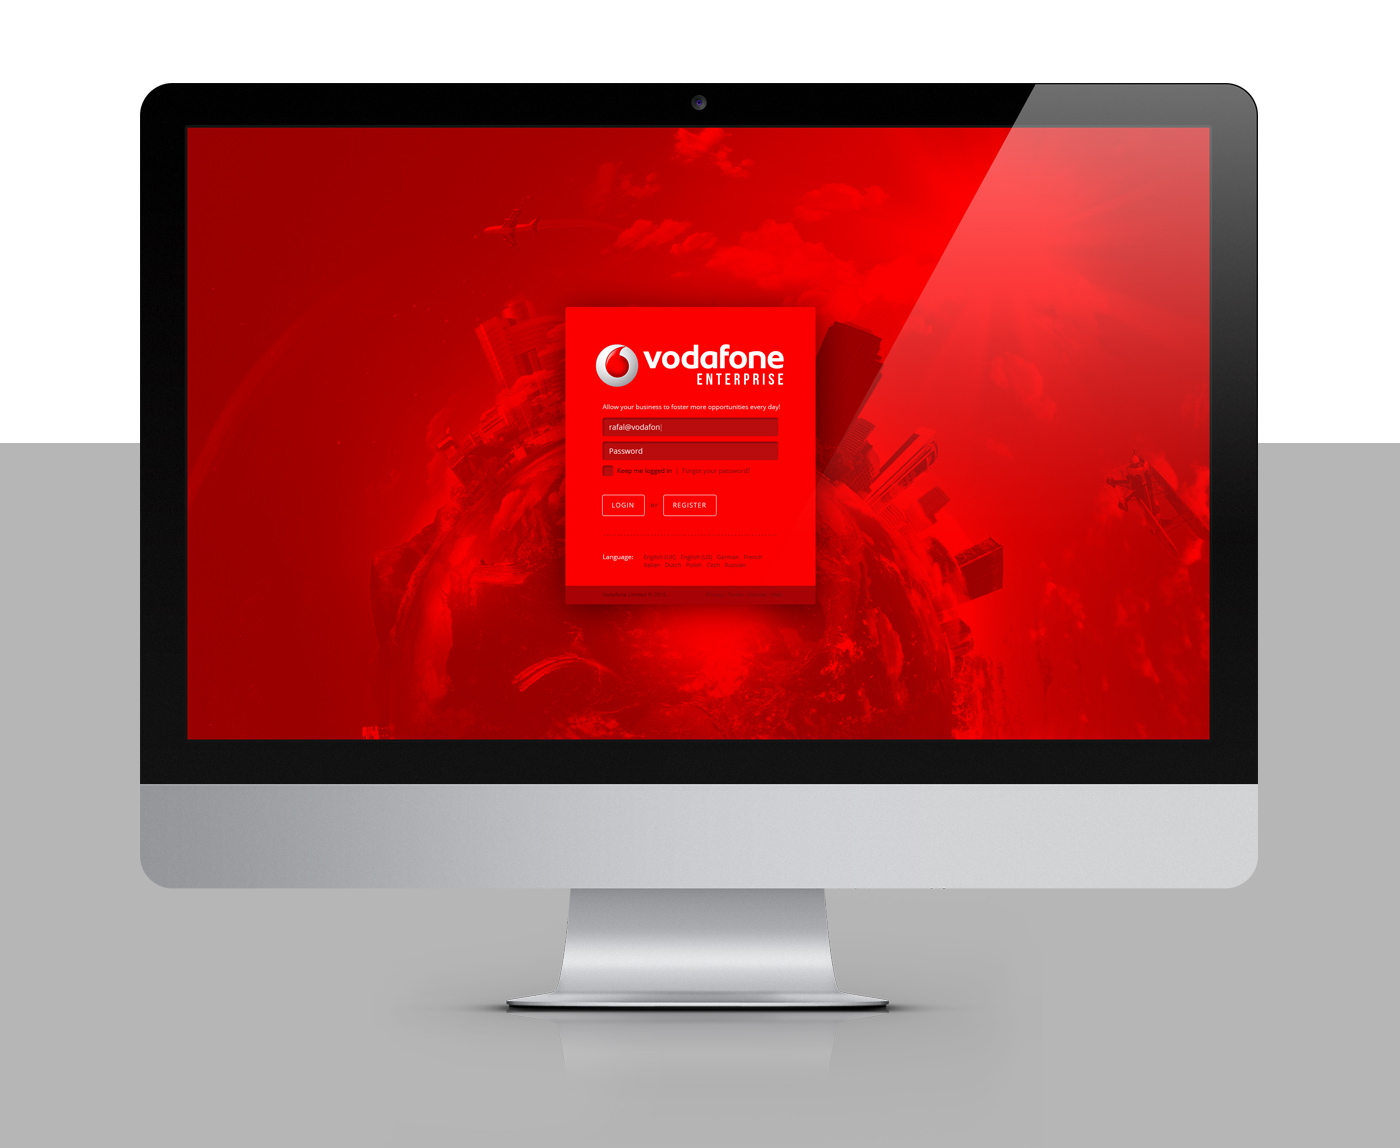 Behance-presentation---vodafone_website_redesign_part_11_05